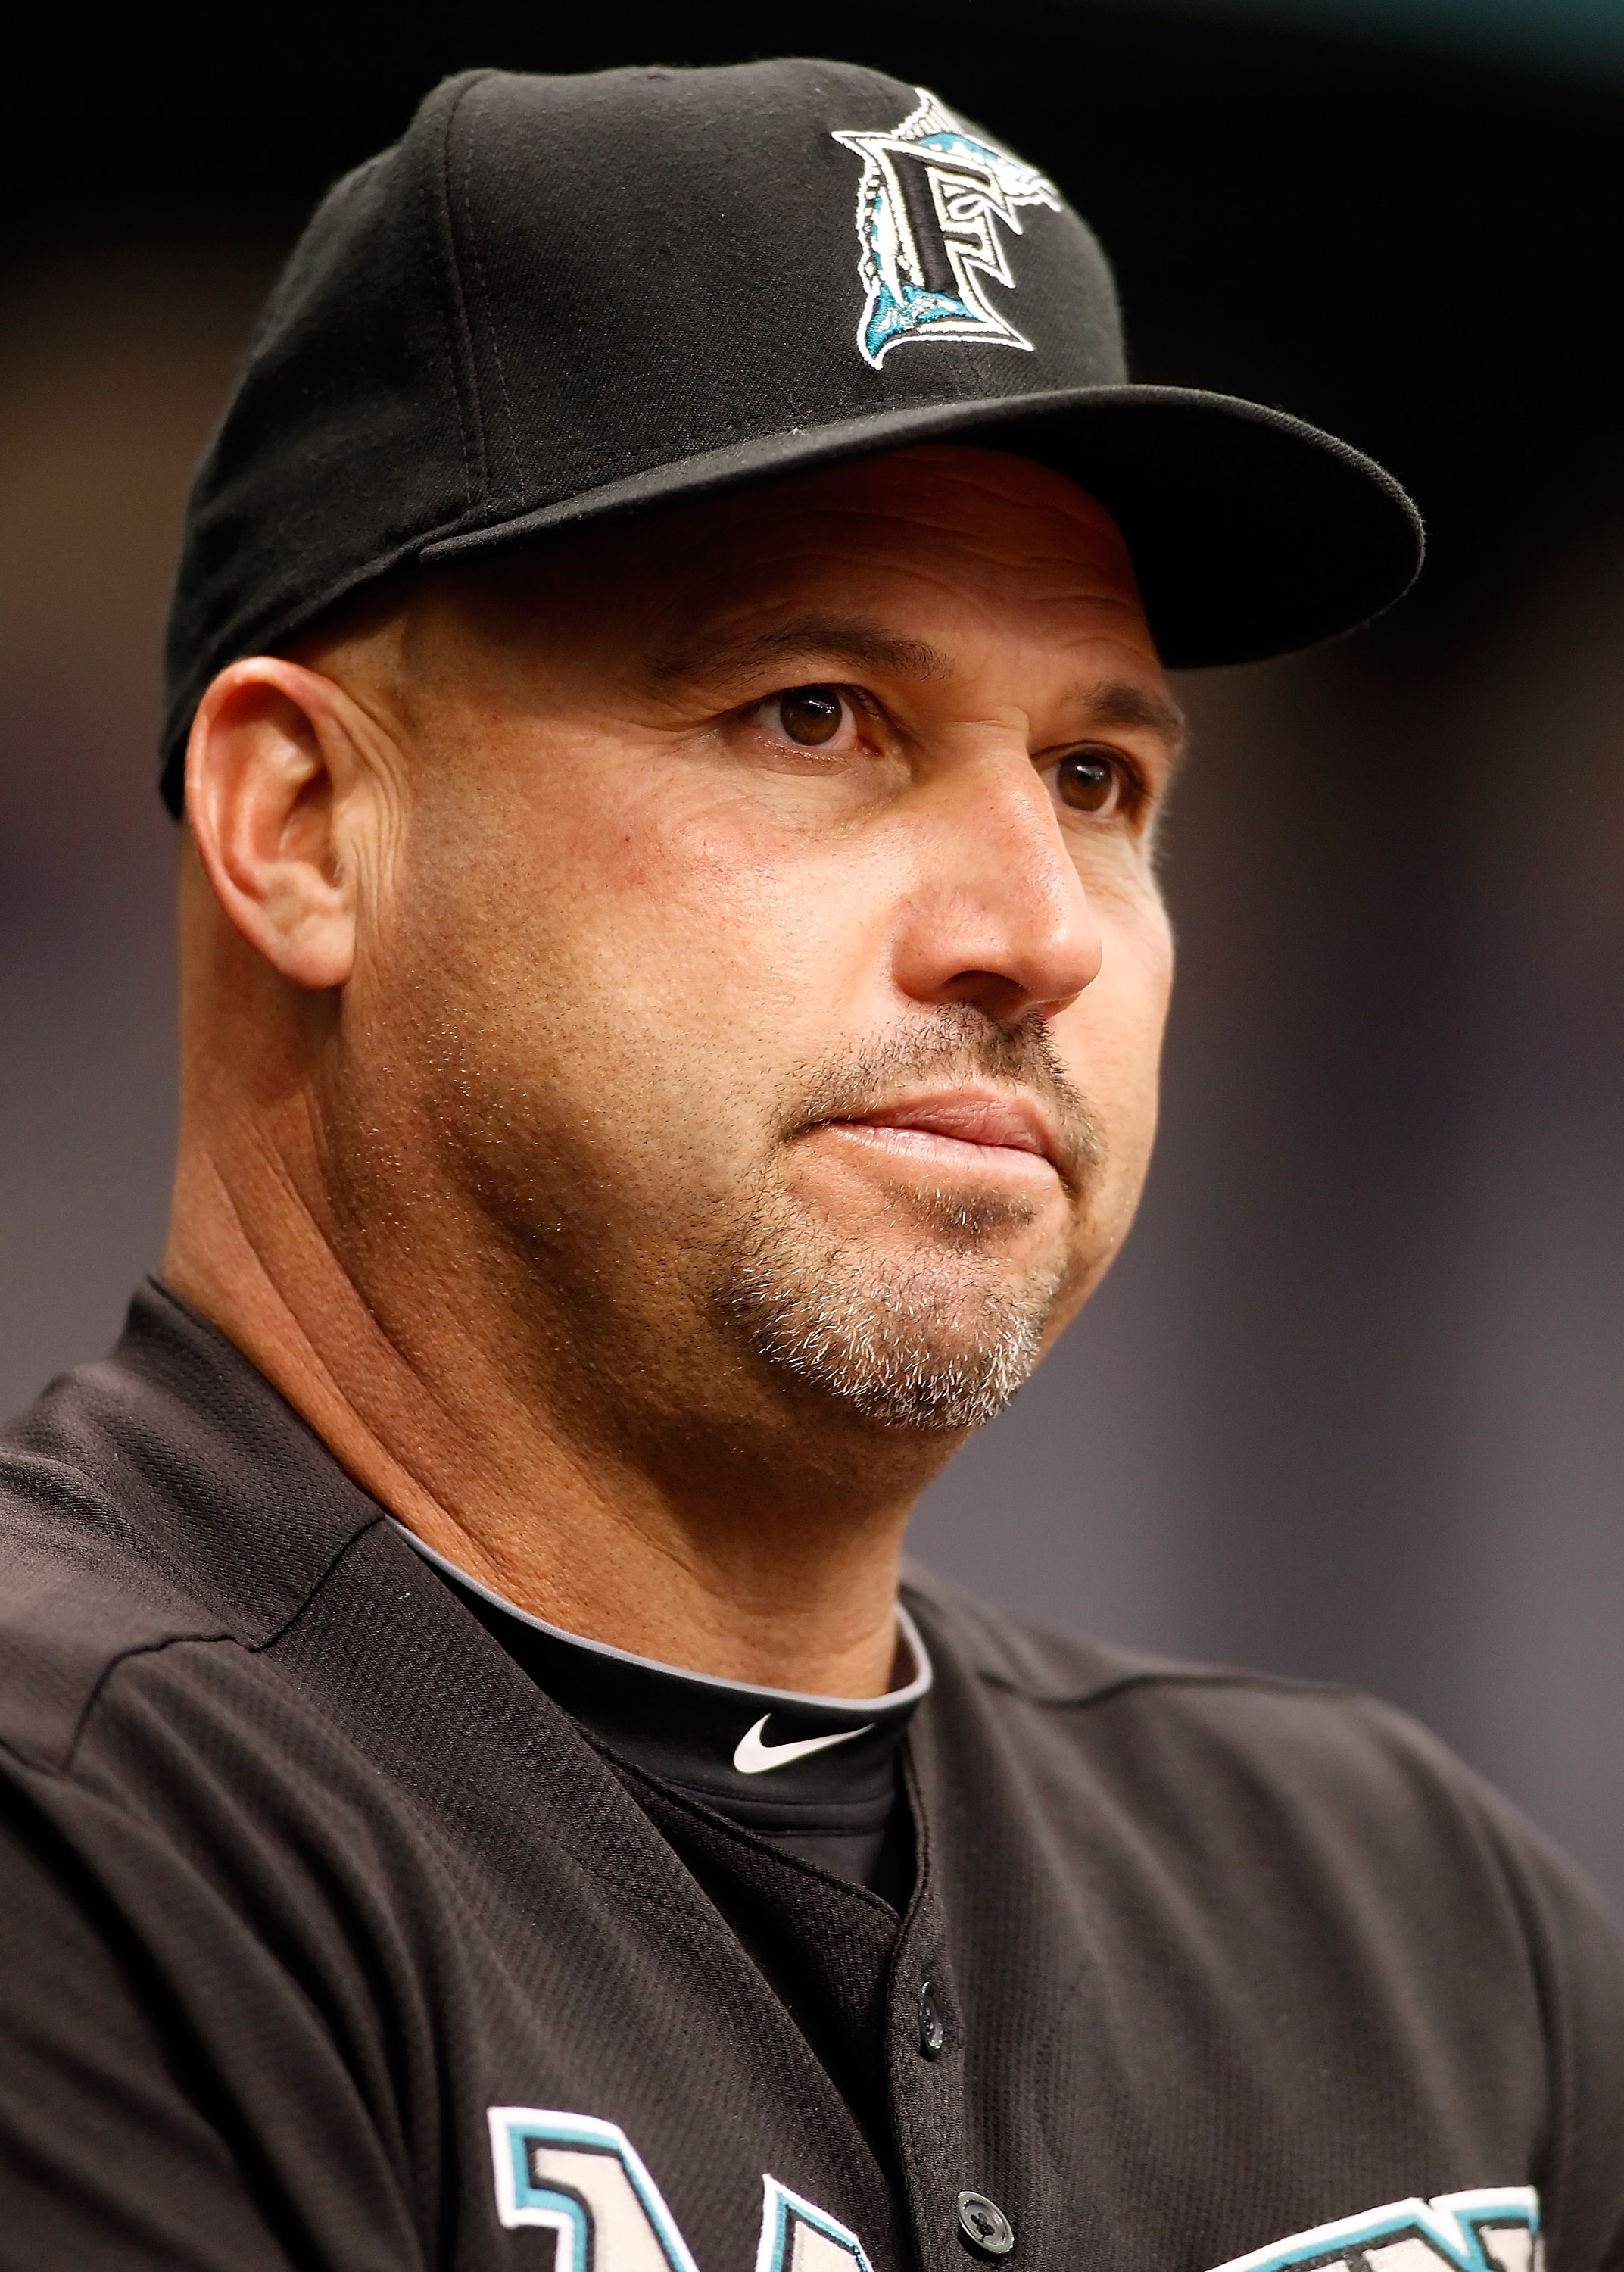 ST. PETERSBURG, FL - JUNE 13:  Manager Fredi Gonzalez #33 of the Florida Marlins watches his team against the Tampa Bay Rays during the game at Tropicana Field on June 13, 2010 in St. Petersburg, Florida.  (Photo by J. Meric/Getty Images)